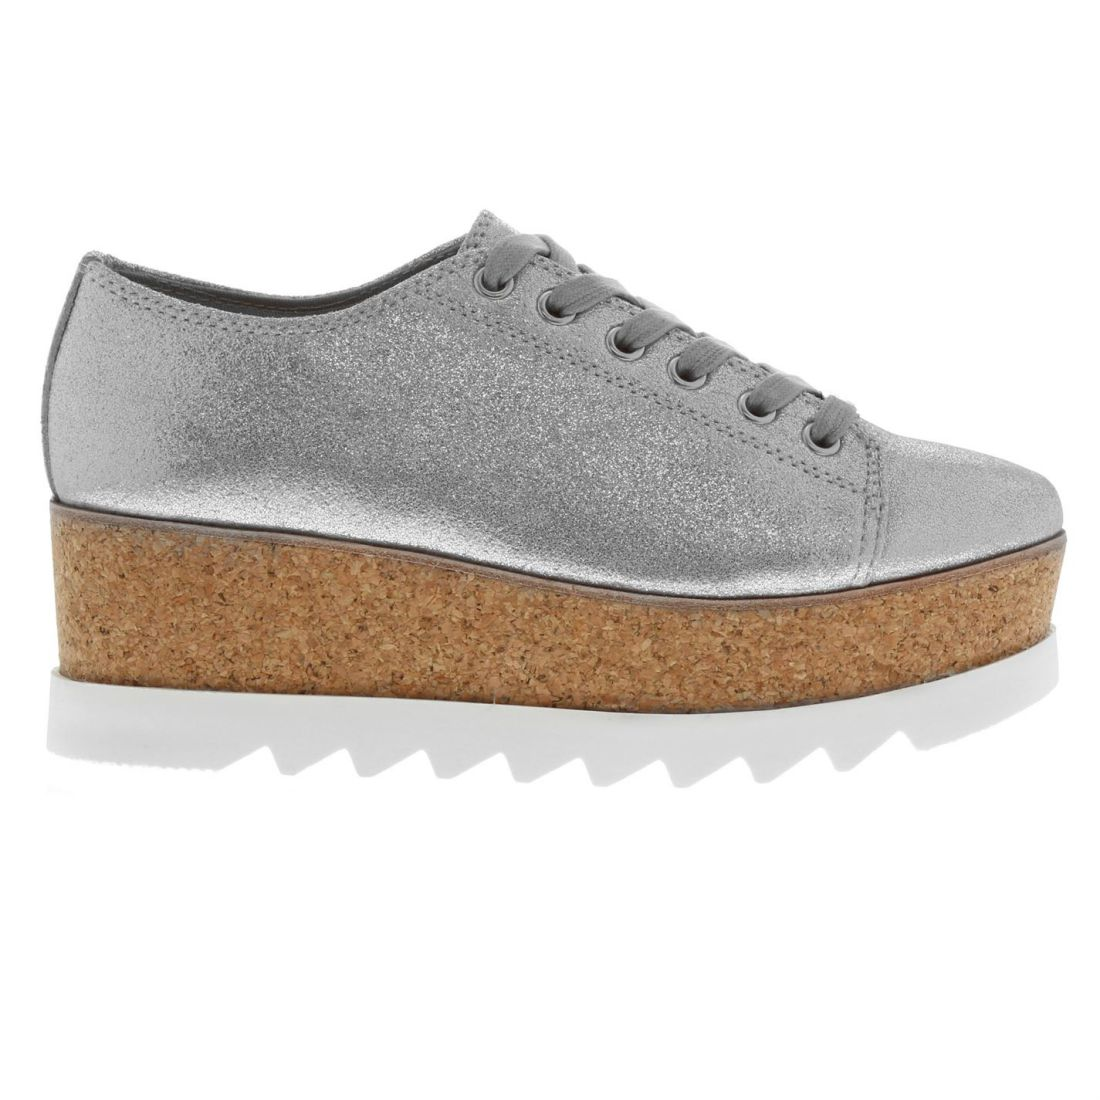 5ef186e037d Image is loading Womens-Steve-Madden-Korrie-Trainers-Wedges-Lace-Up-